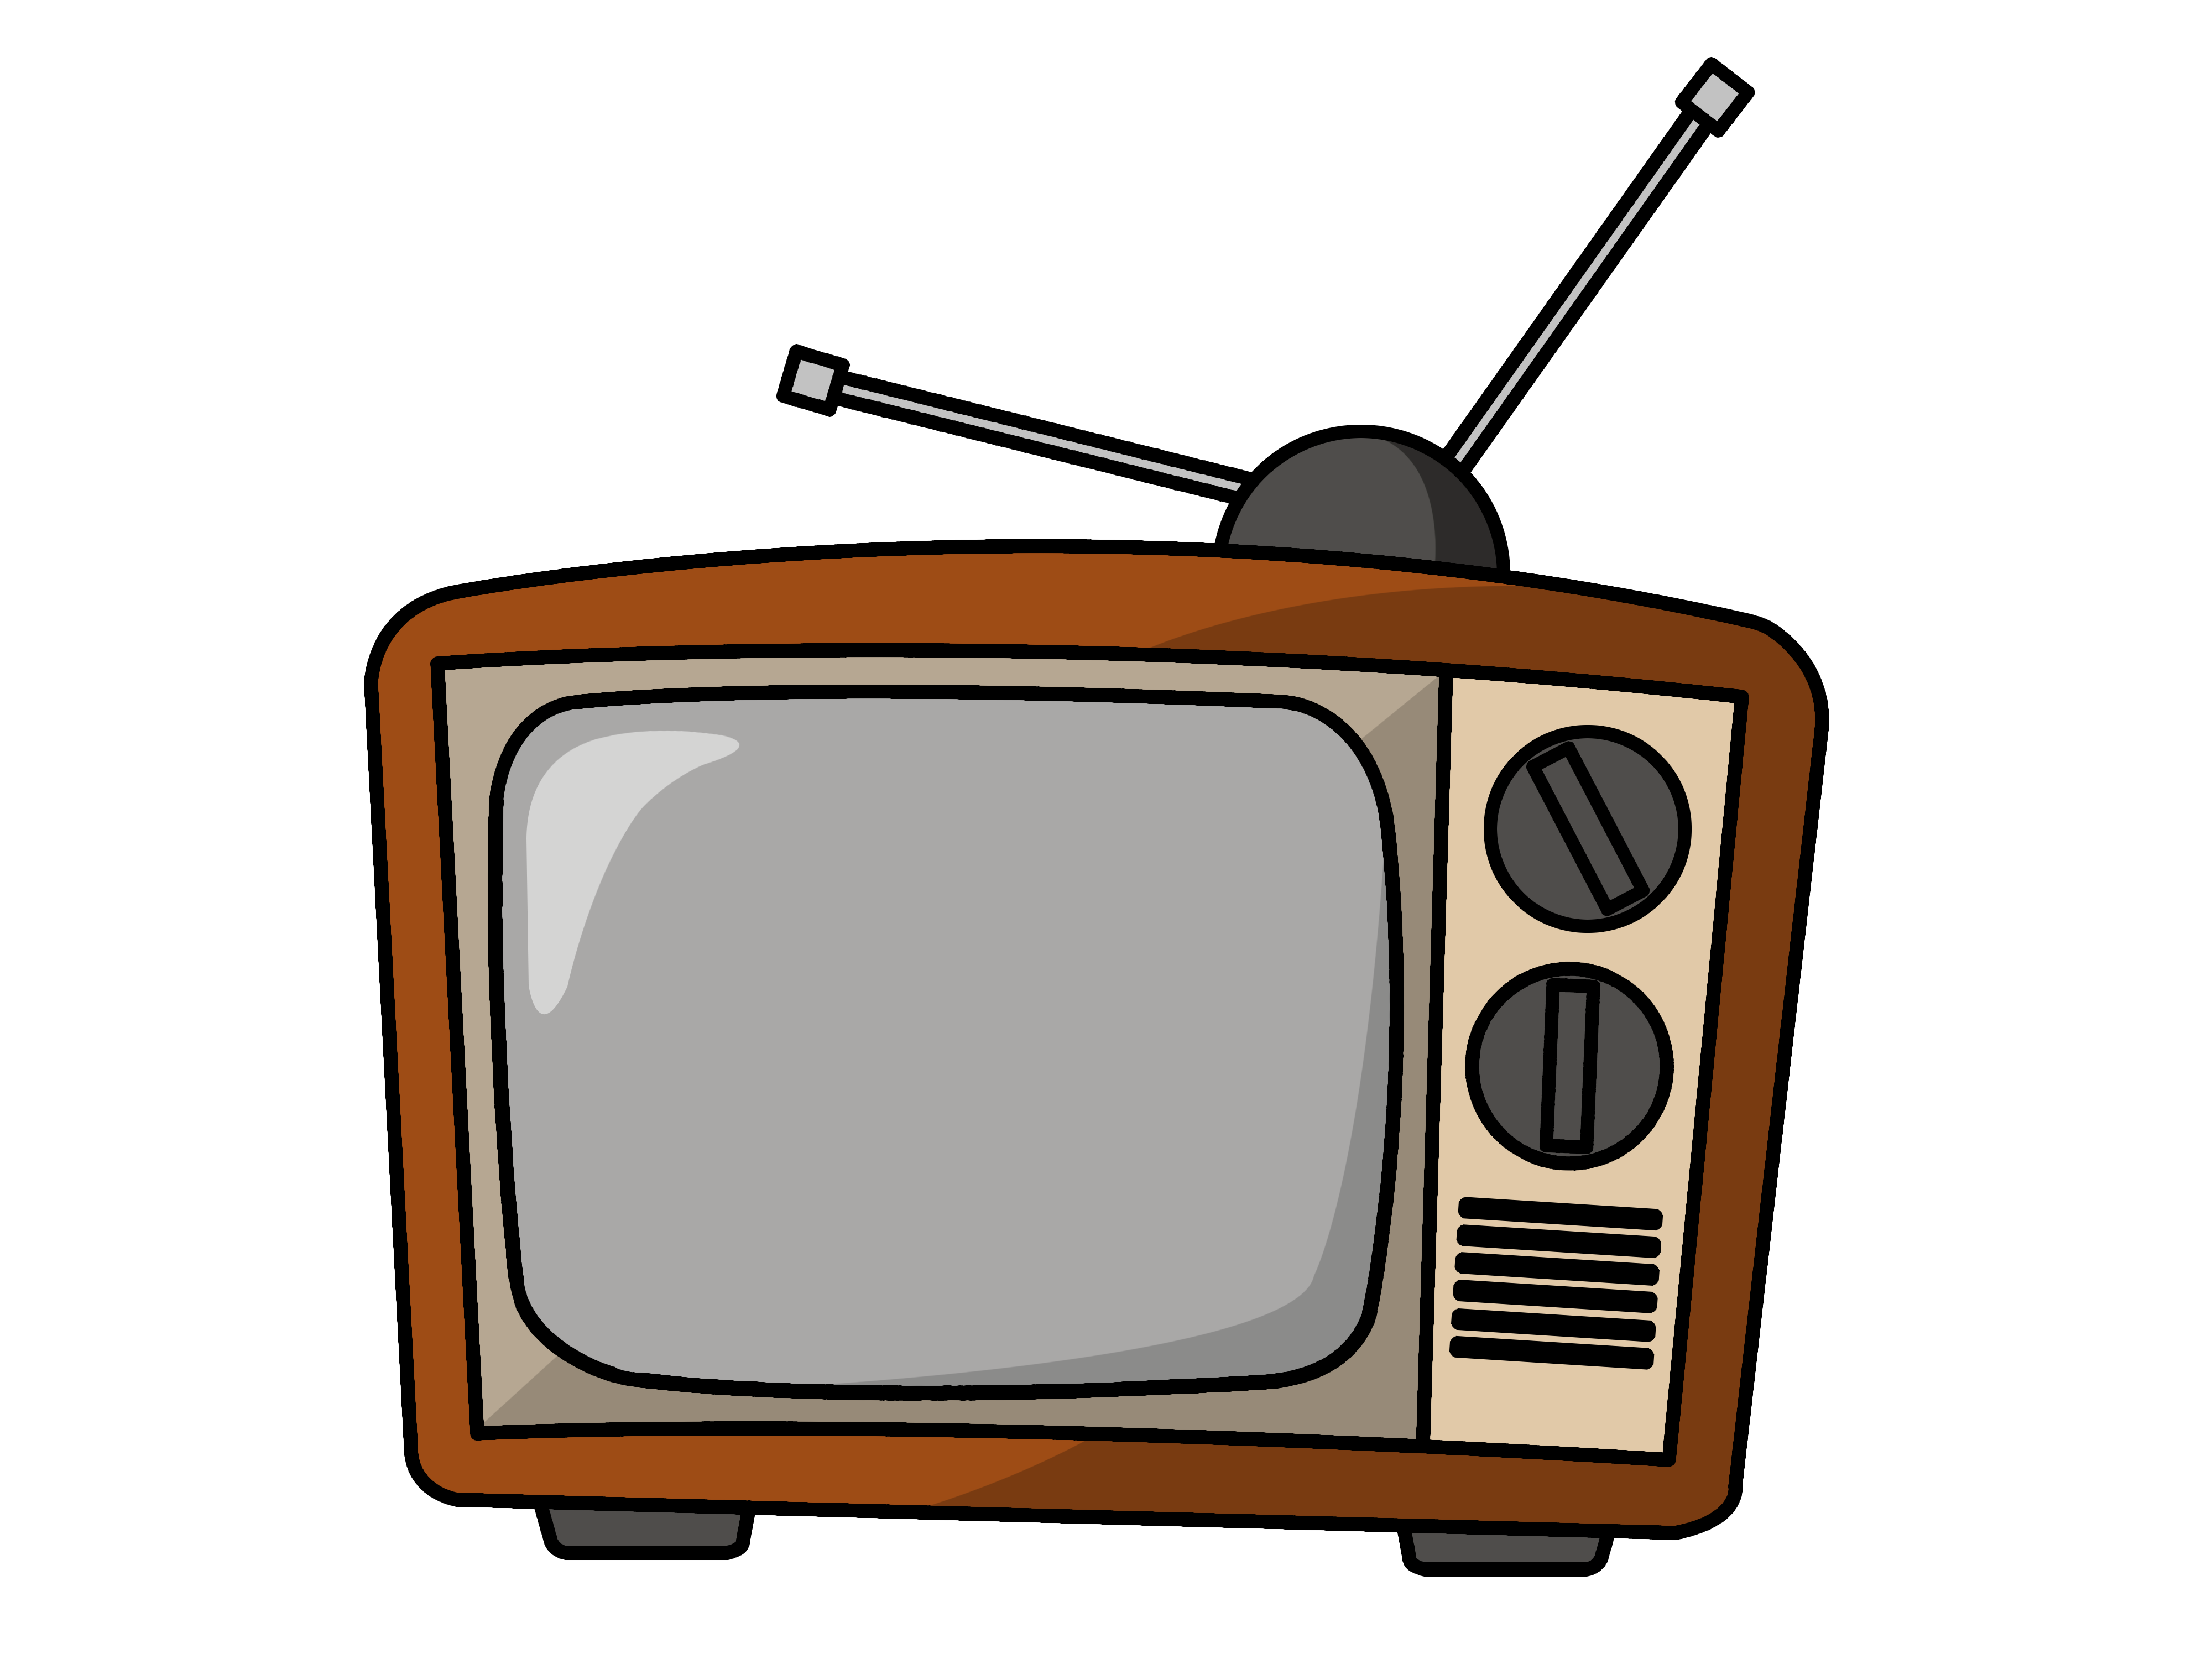 Tv clipart png. Television transparent pictures free